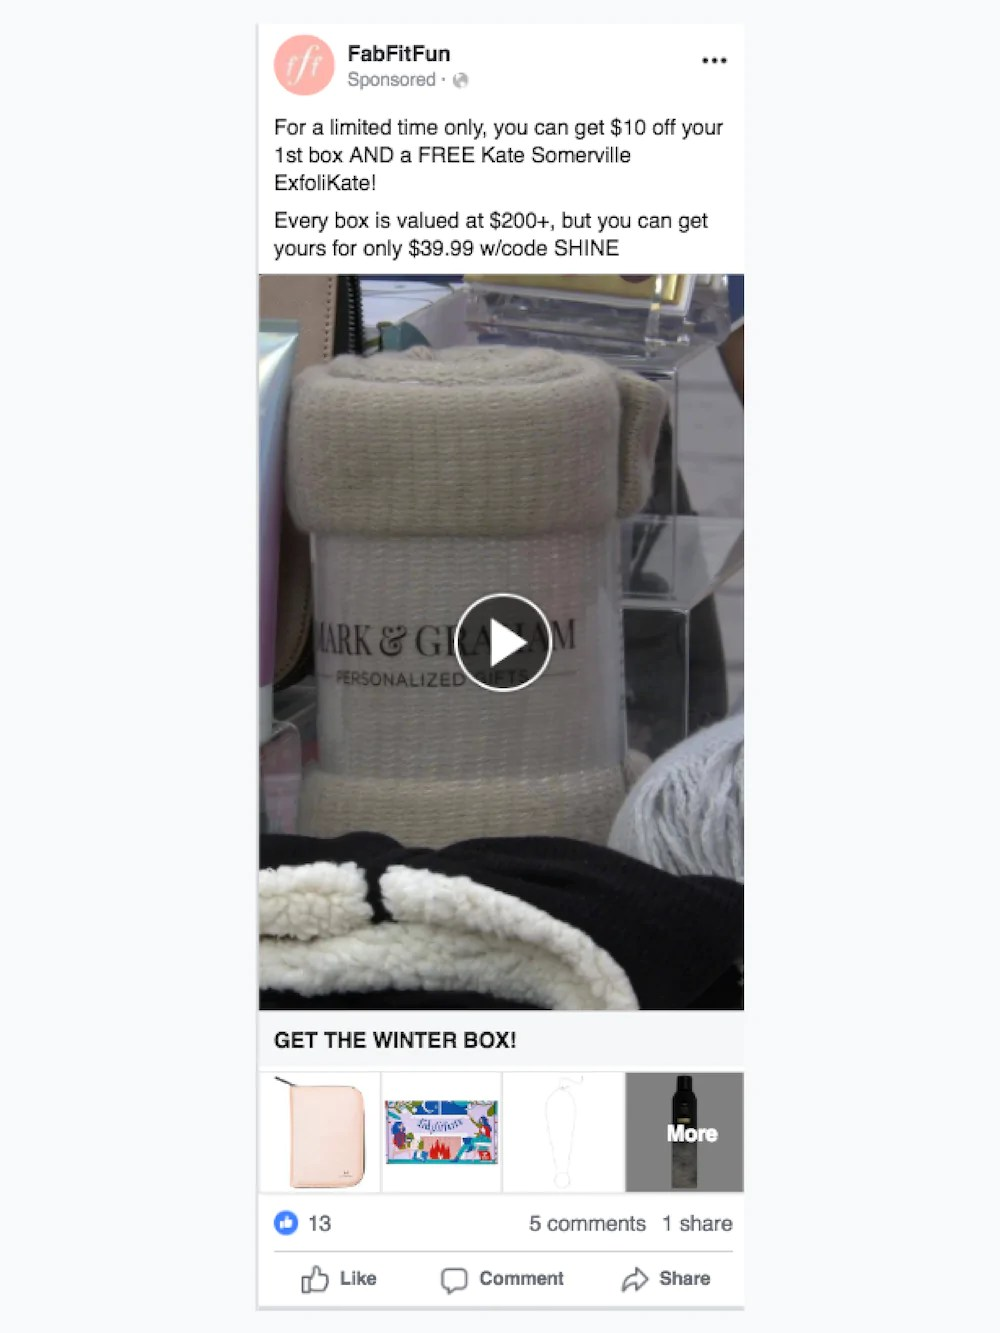 Advertising multiple products on Facebook.